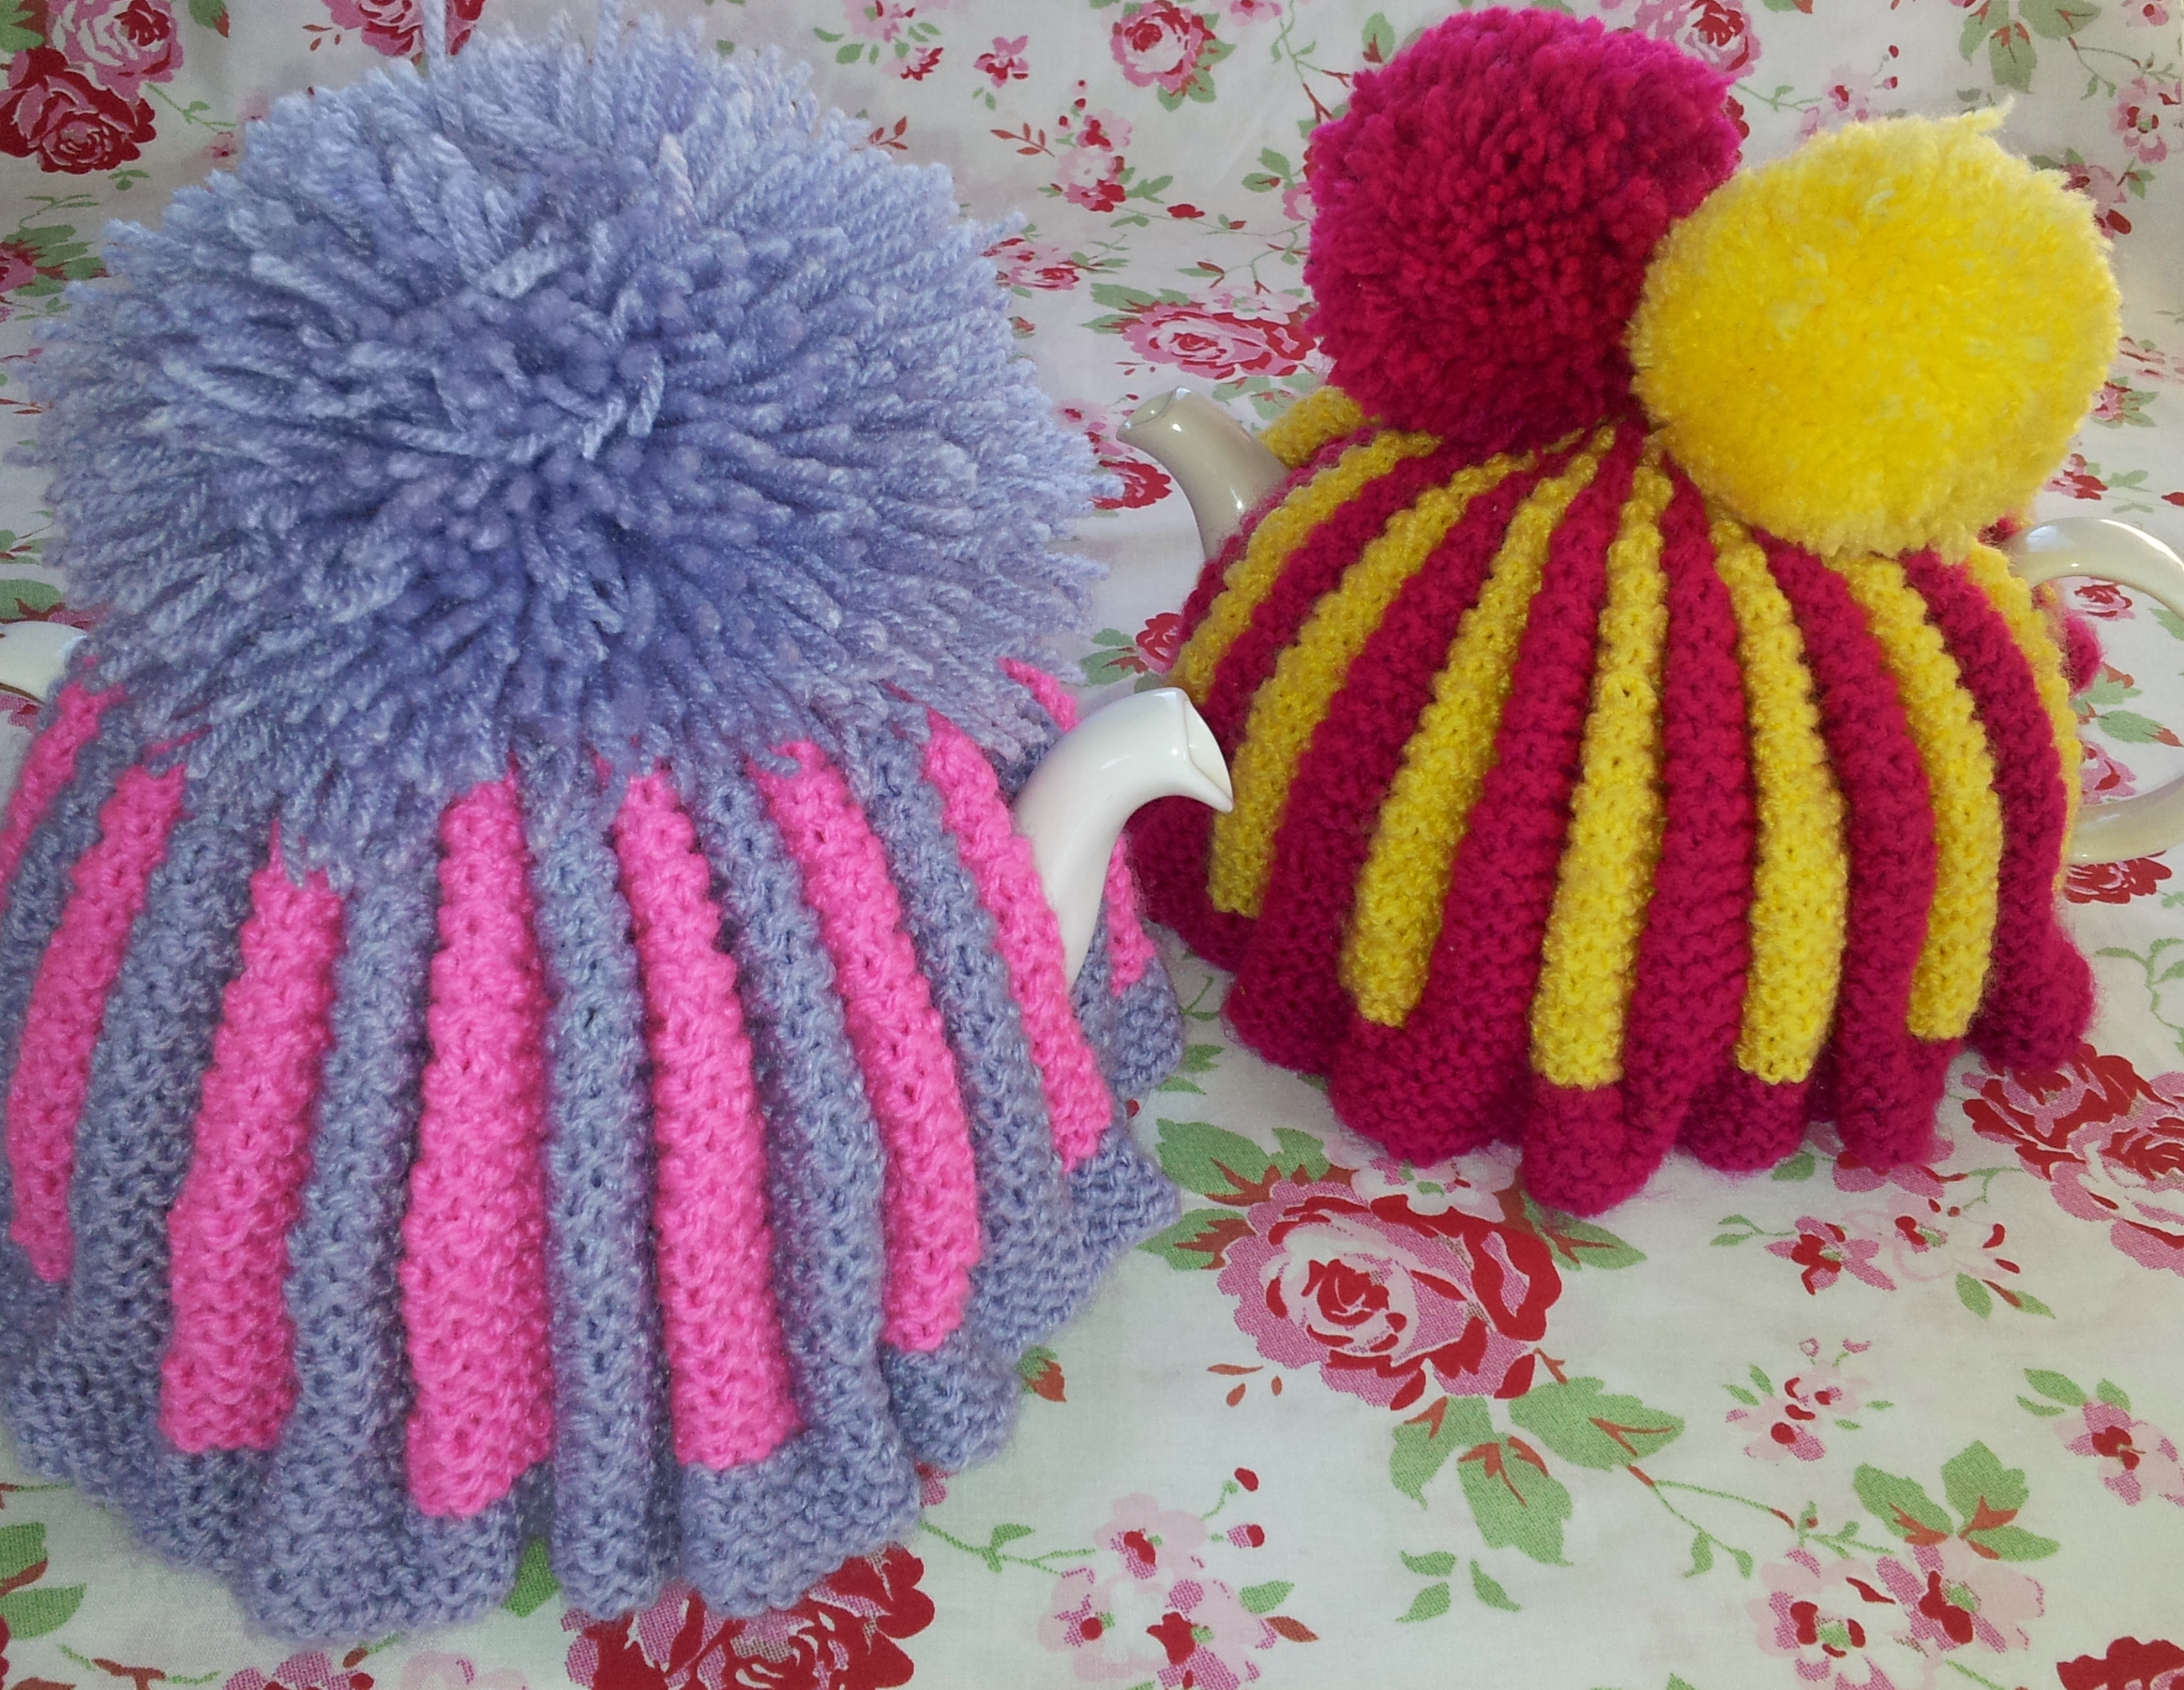 My Vintage Style Knitted Tea Cosy (Cozy) | thestitchsharer